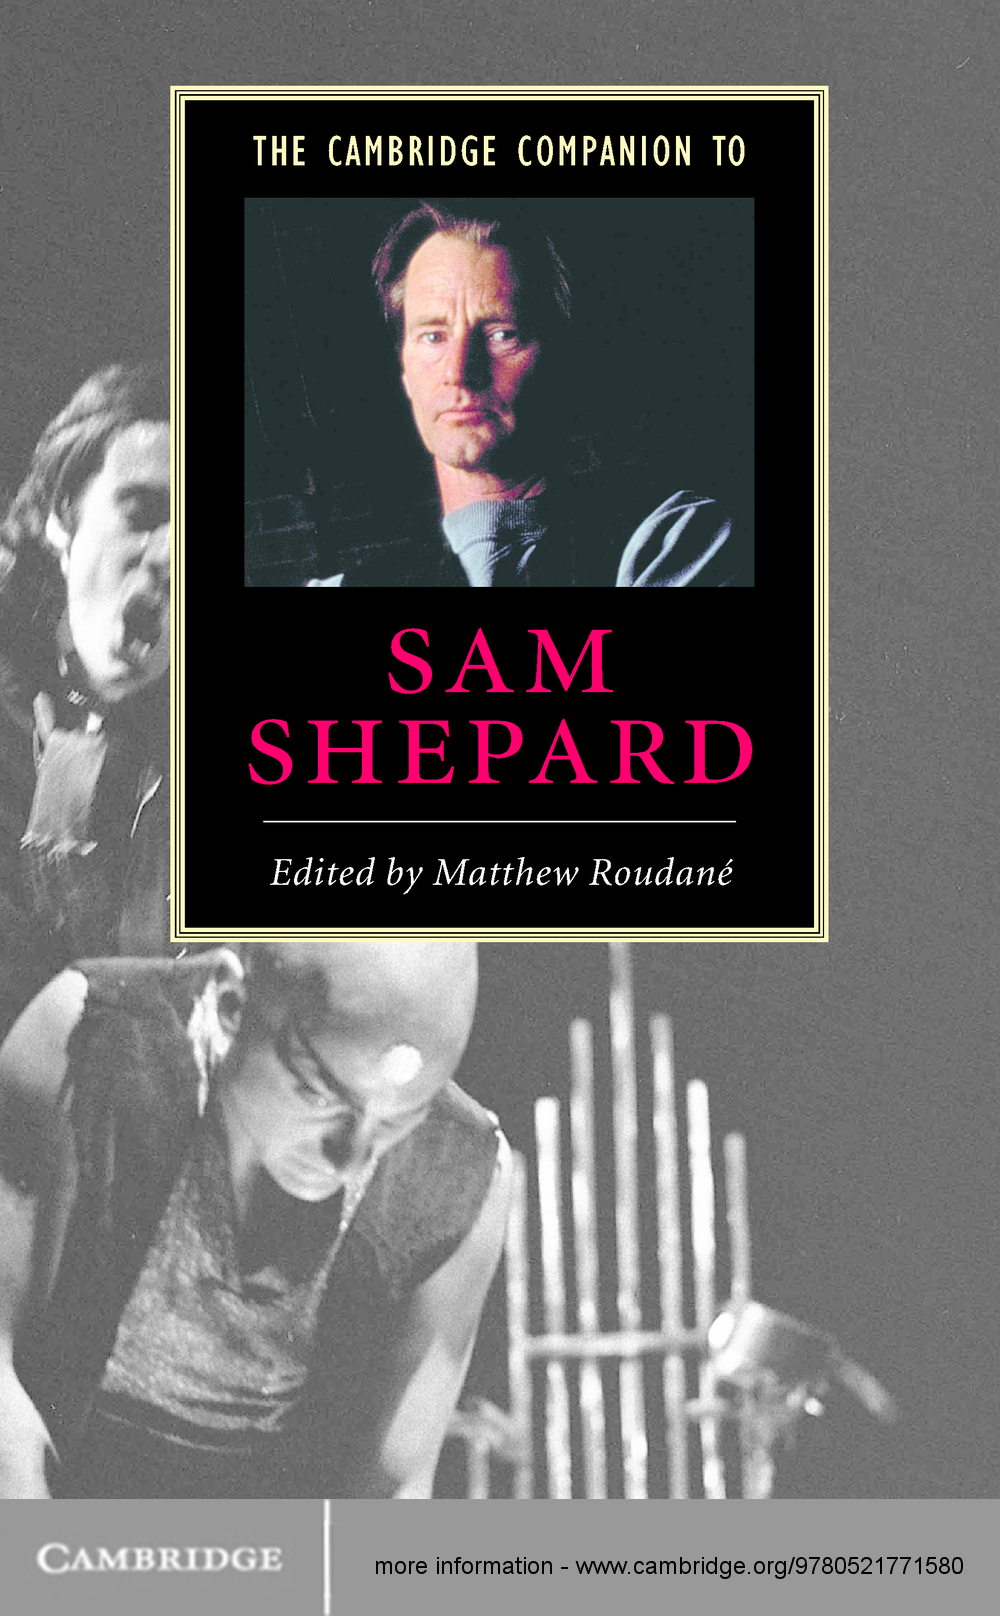 The Cambridge Companion to Sam Shepard